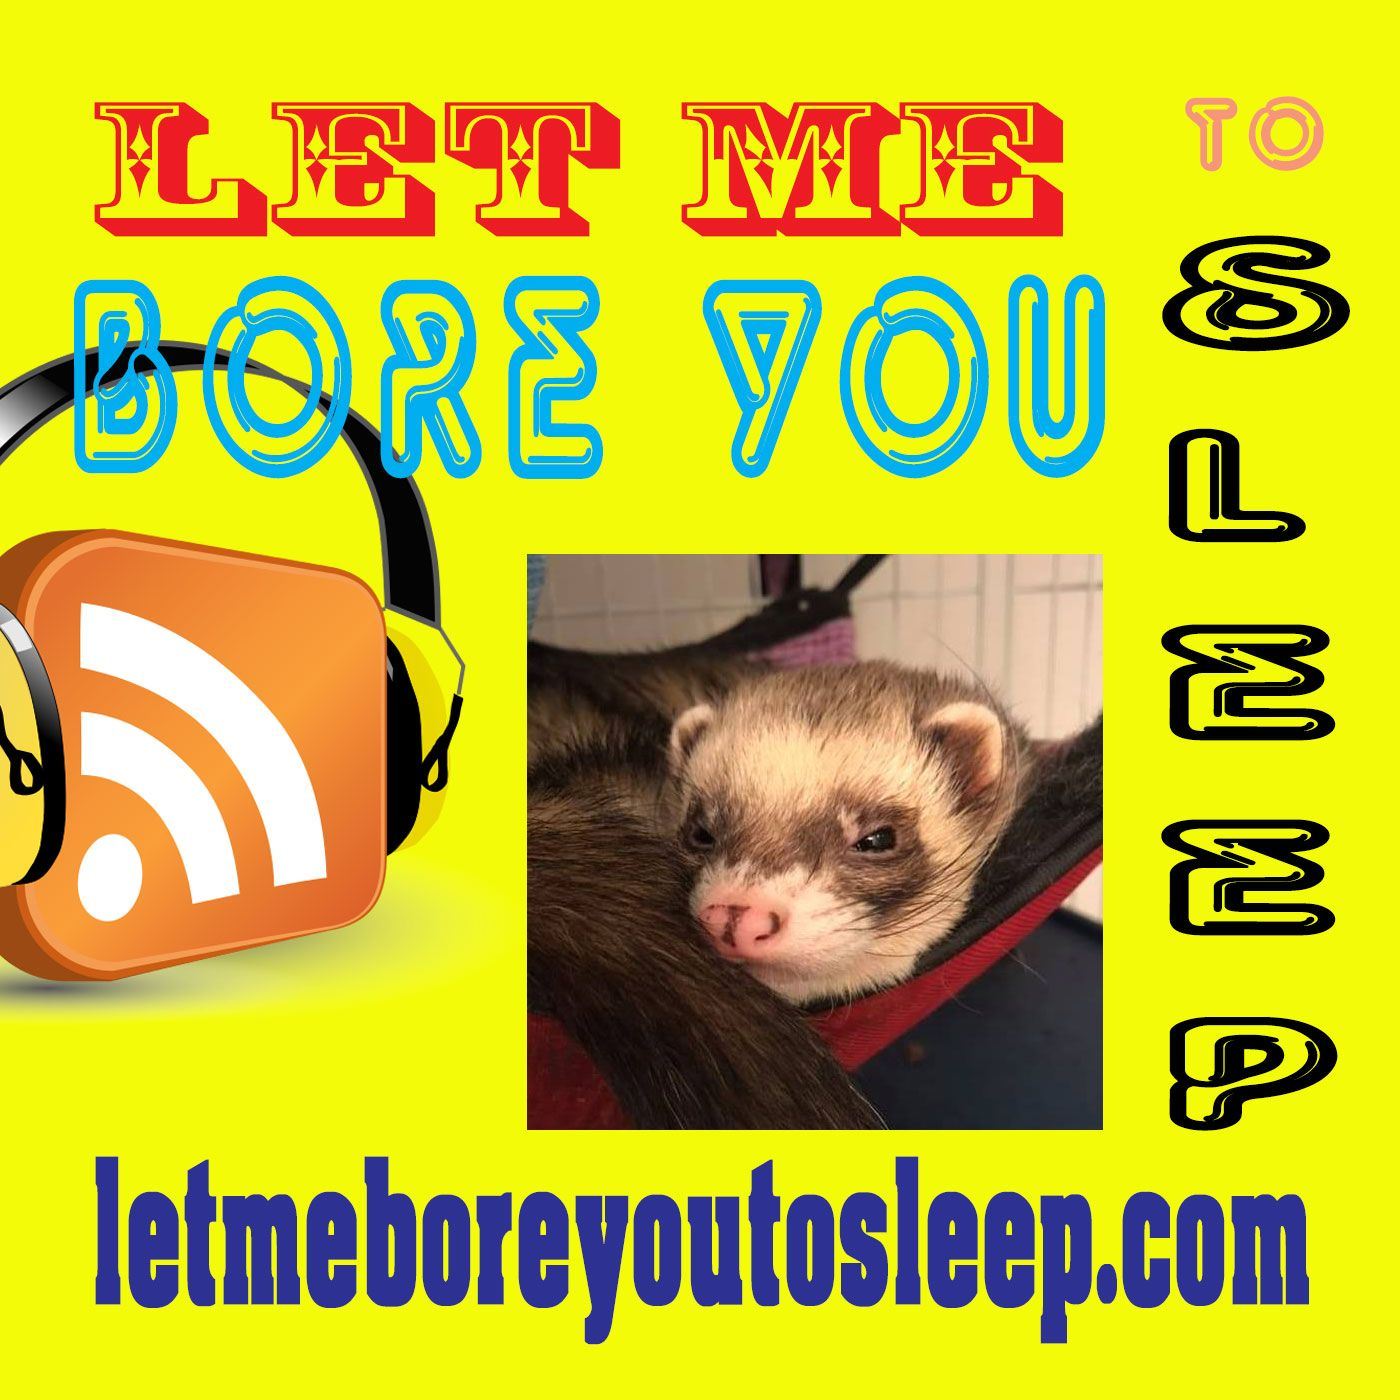 #136 Let me bore you to sleep - Jason Newland (26th April 2019) - letmeboreyoutosleep.com